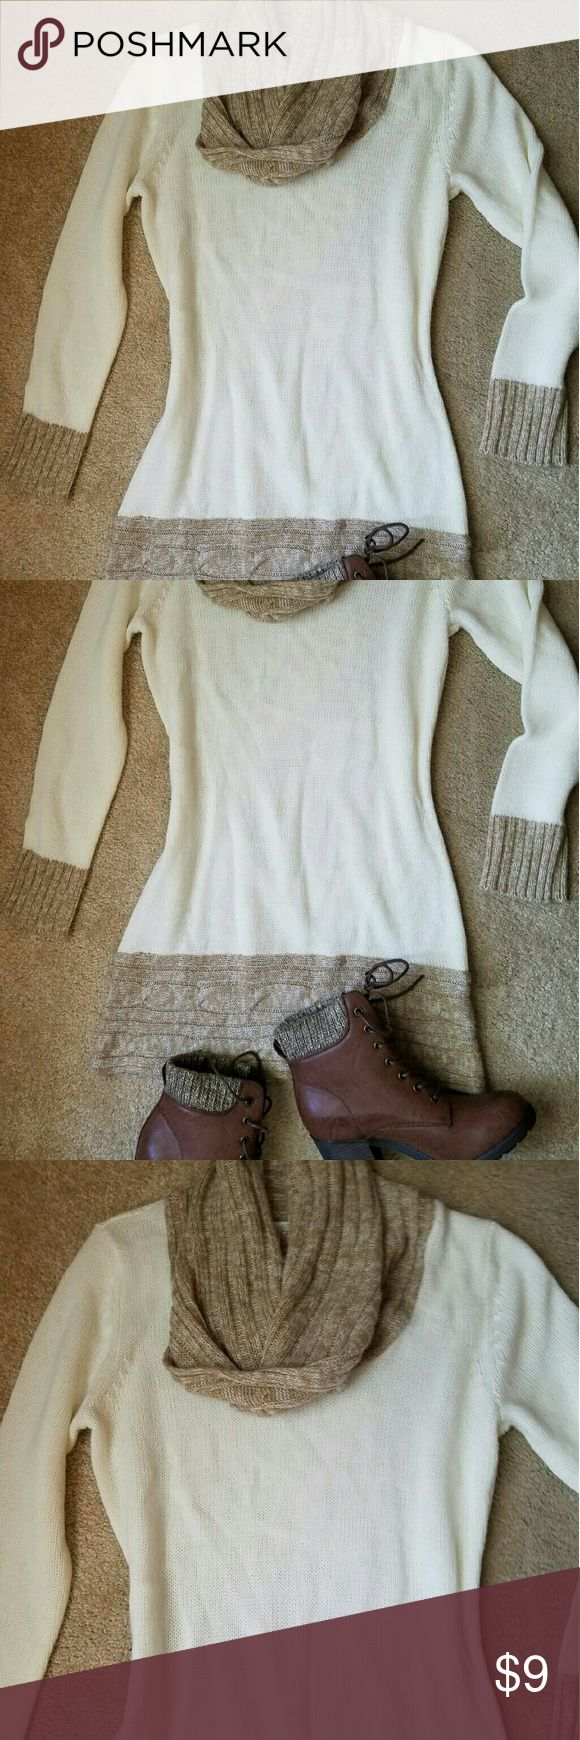 Winter dress. Perfect for fall and winter. It looks amazing with some legguins and booties. I wear this only a few times, but it looks almost new! Canyon River Blues Dresses Midi